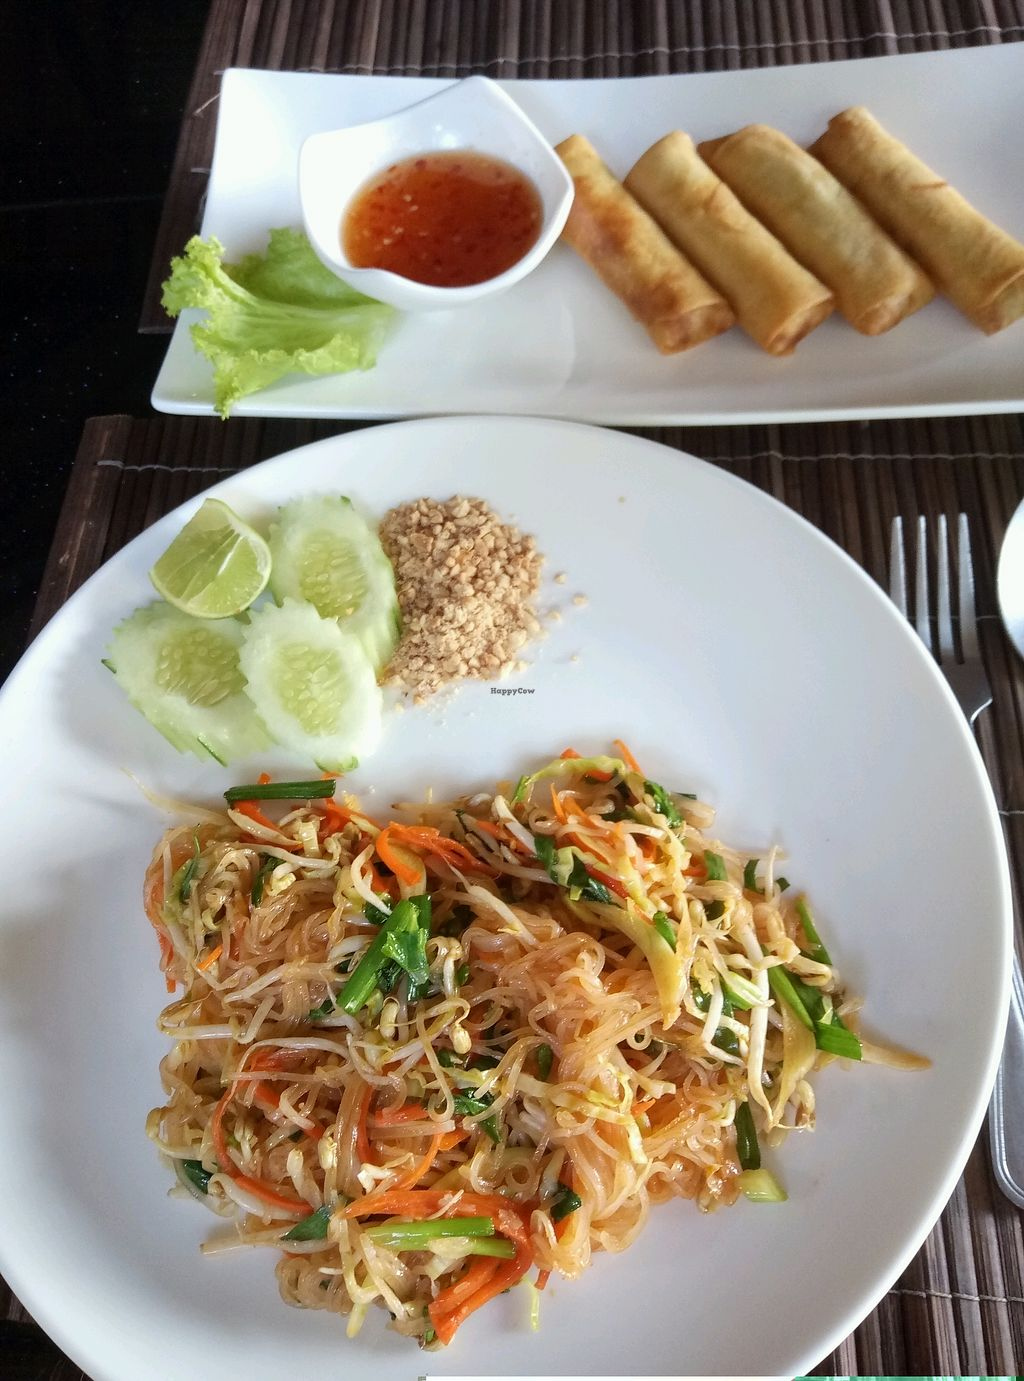 "Photo of Ten Moons  by <a href=""/members/profile/SamanthaBurns"">SamanthaBurns</a> <br/>Pad thai and spring rolls <br/> February 19, 2018  - <a href='/contact/abuse/image/82592/361321'>Report</a>"